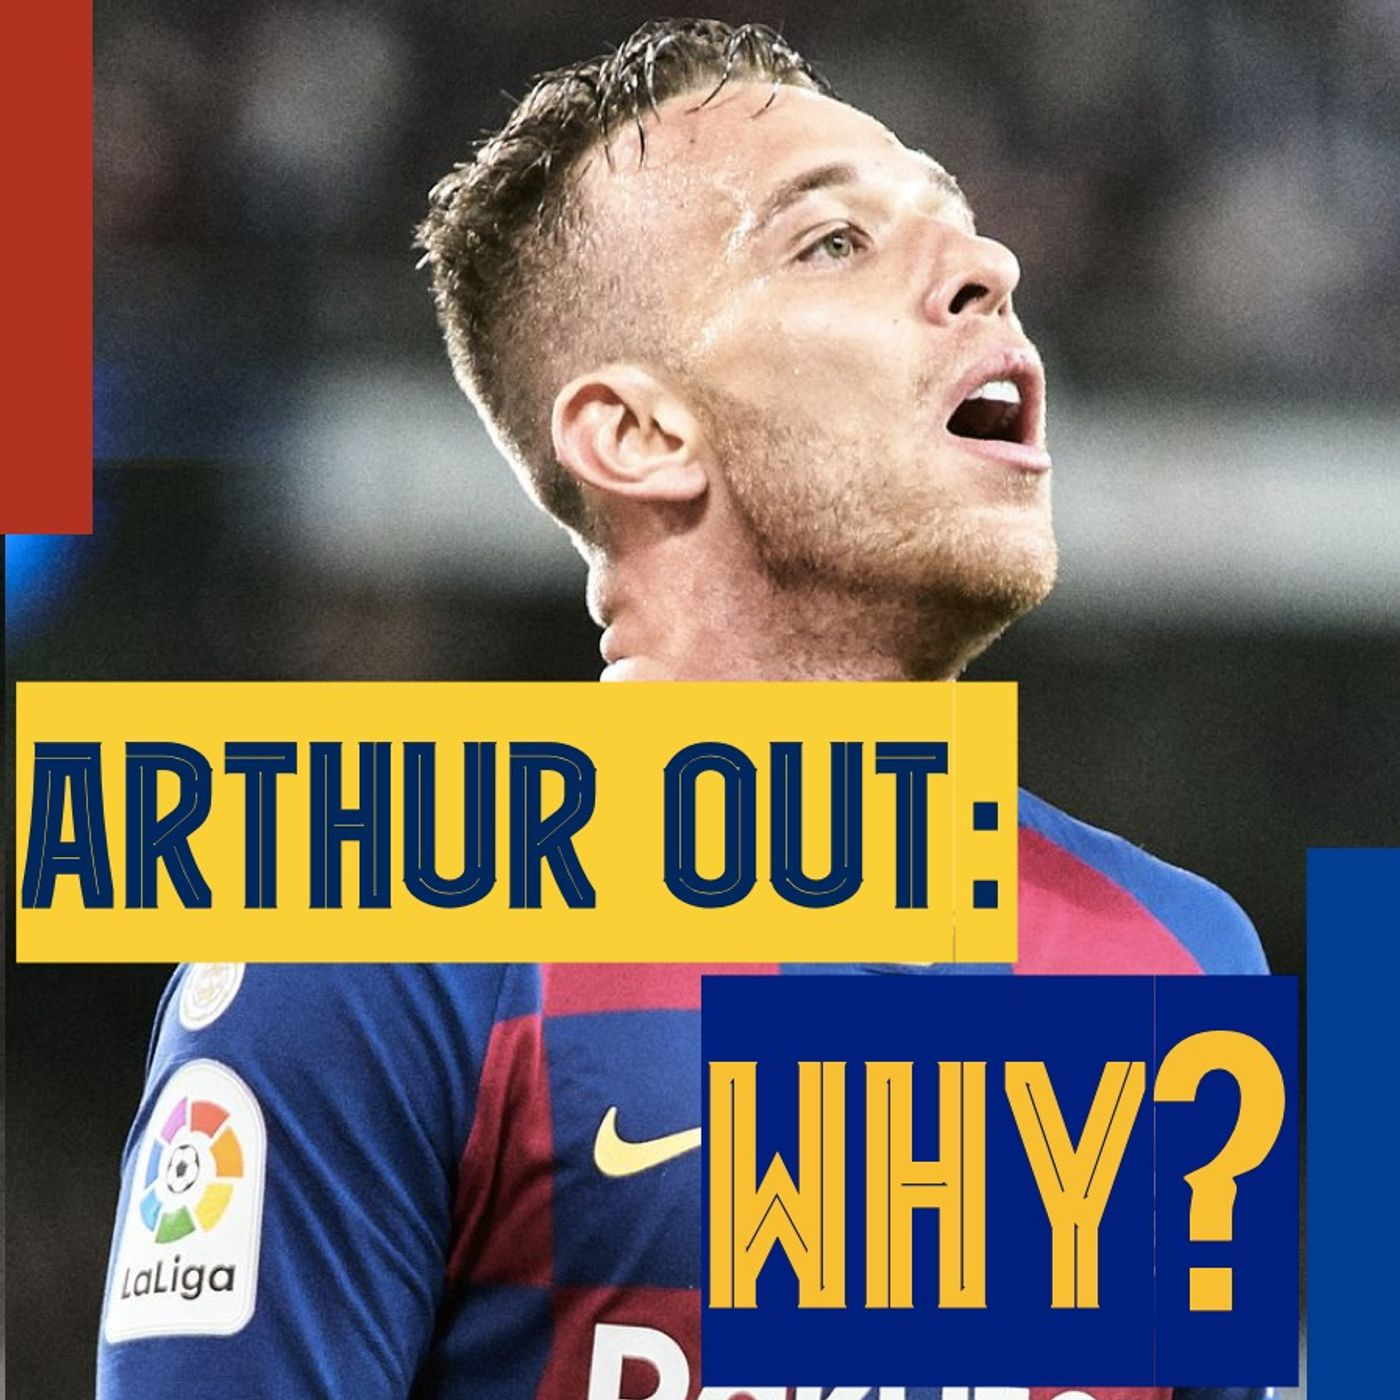 Why is Setién's Barcelona struggling? Arthur out, Pjanic in, and Riqui Puig impact